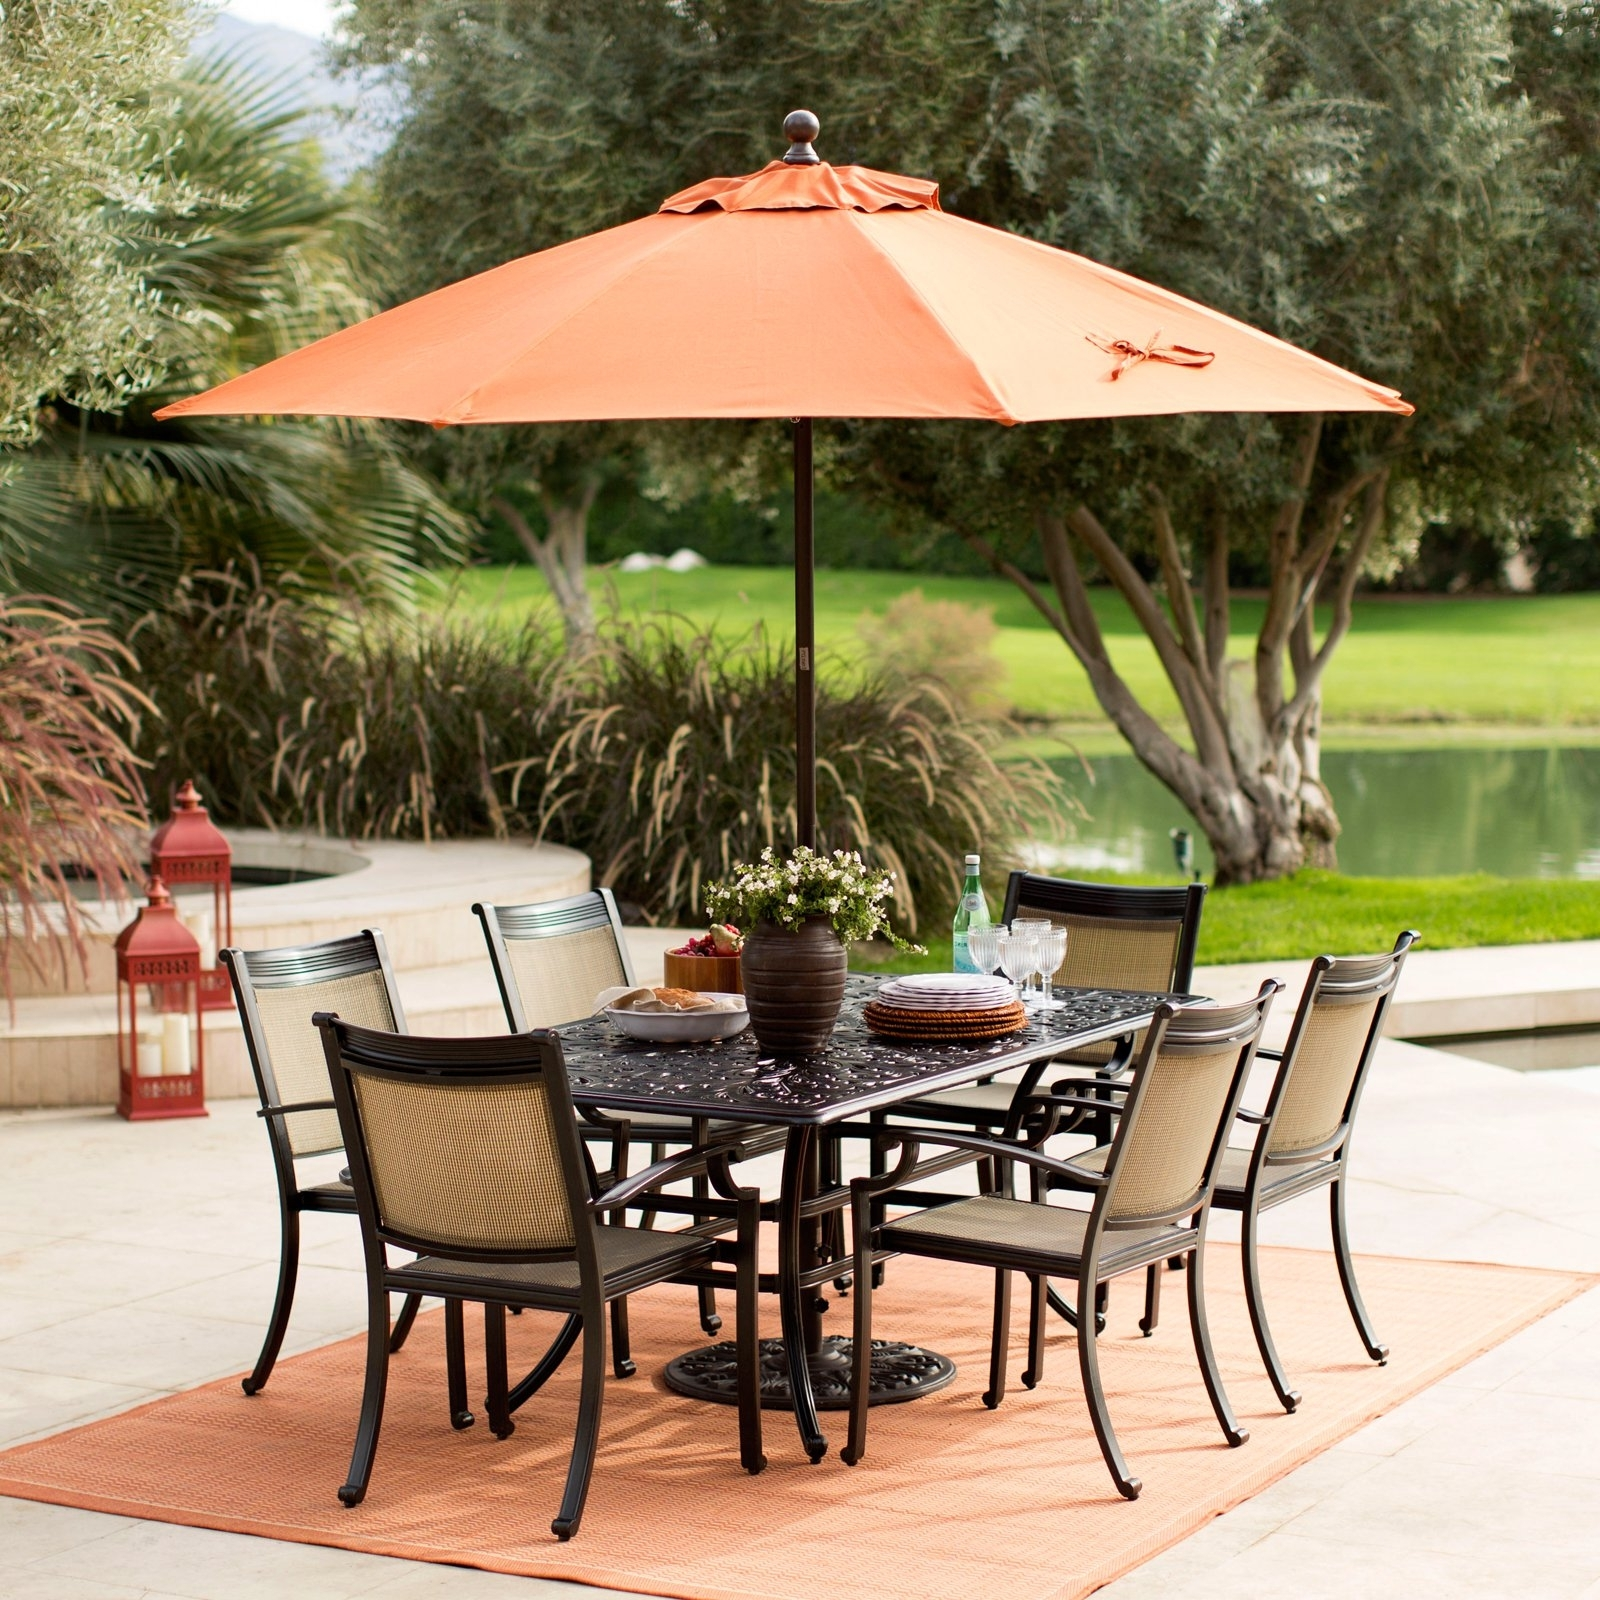 Coral Coast 9 Ft. Sunbrella Commercial Grade Aluminum Wind Resistant Regarding Newest 9 Ft Patio Umbrellas (Gallery 4 of 20)